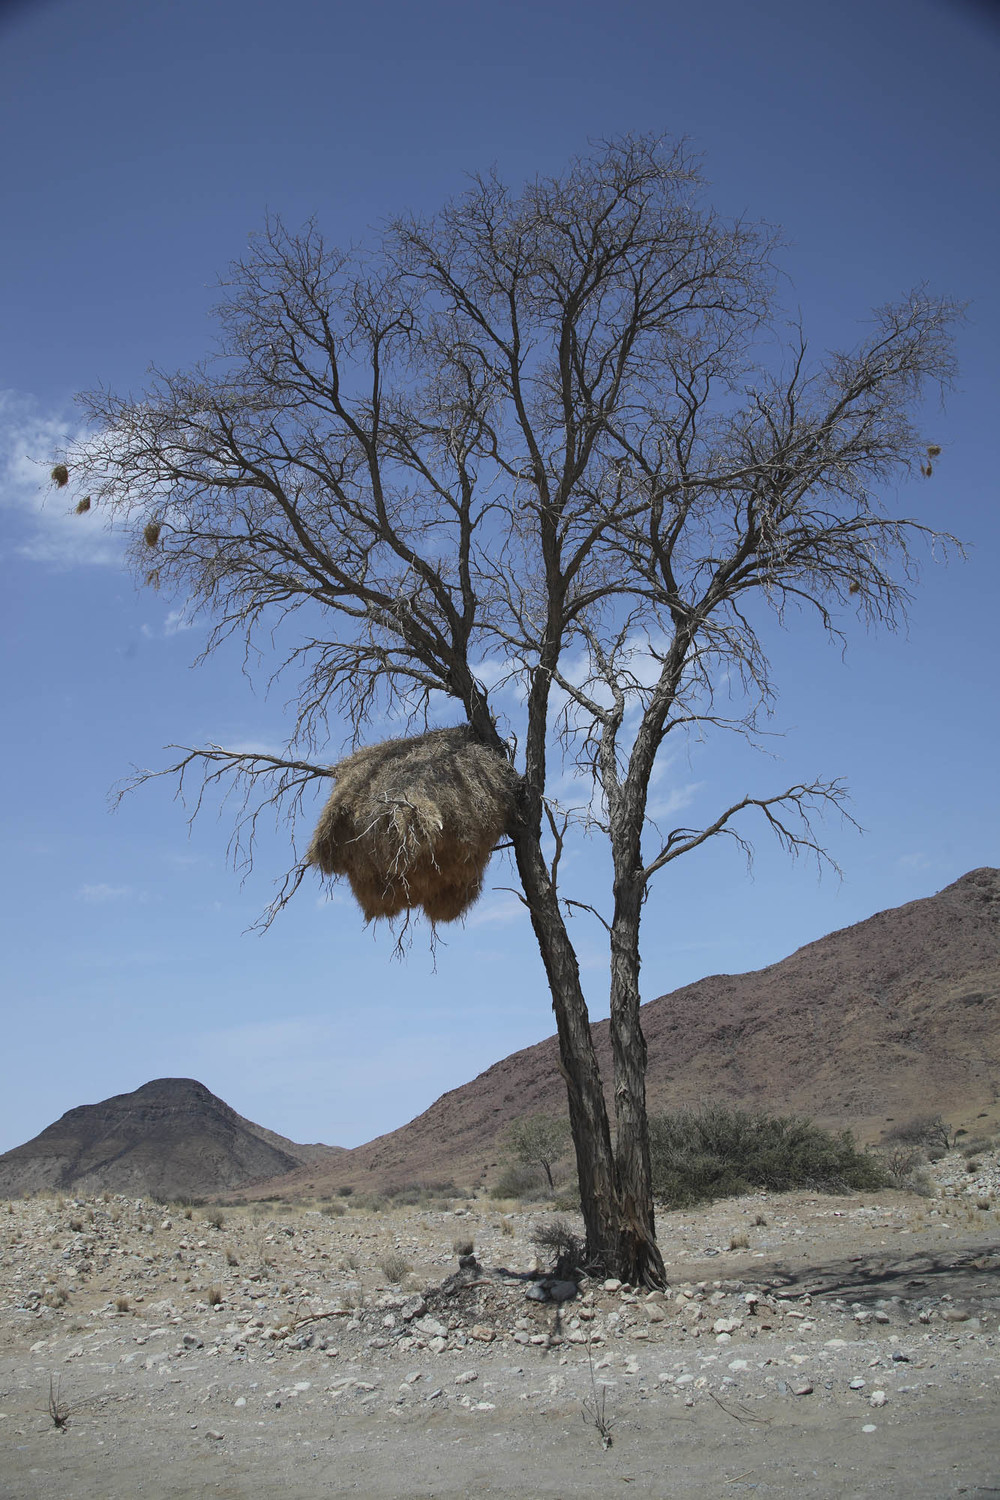 Tree with nest